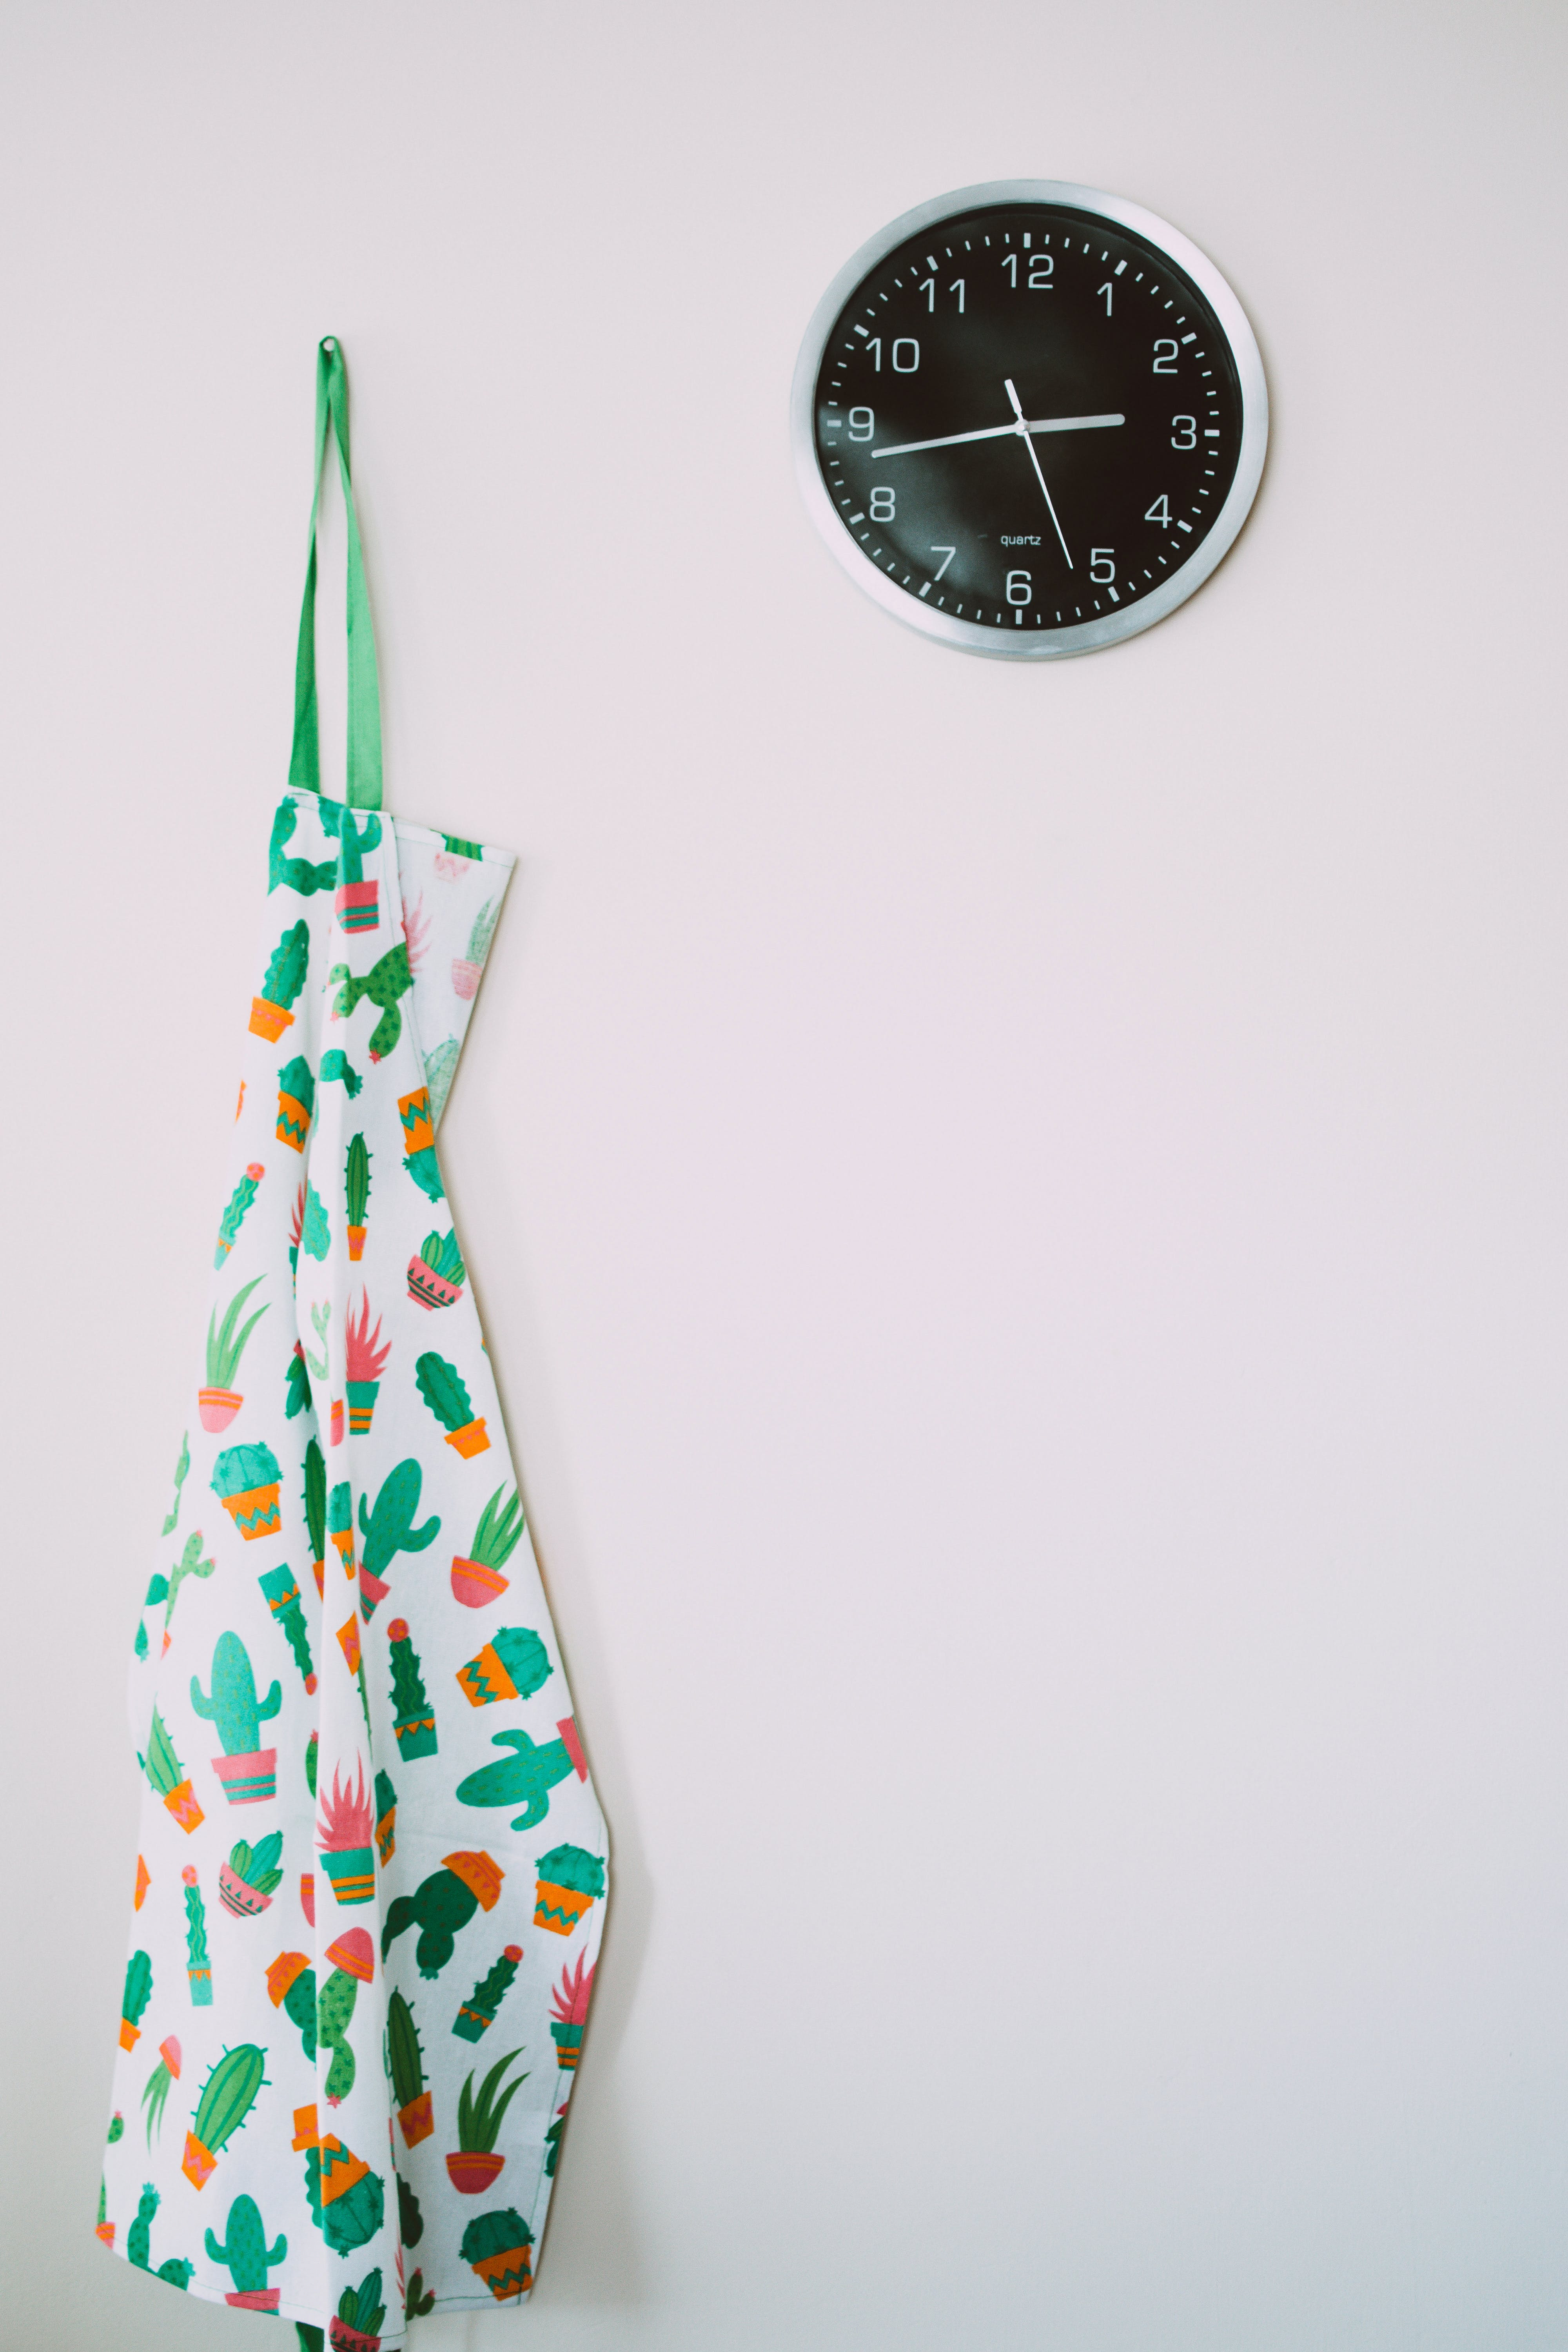 White and Green Cactus Pattern Apron Near Round Gray Analog Wall Clock